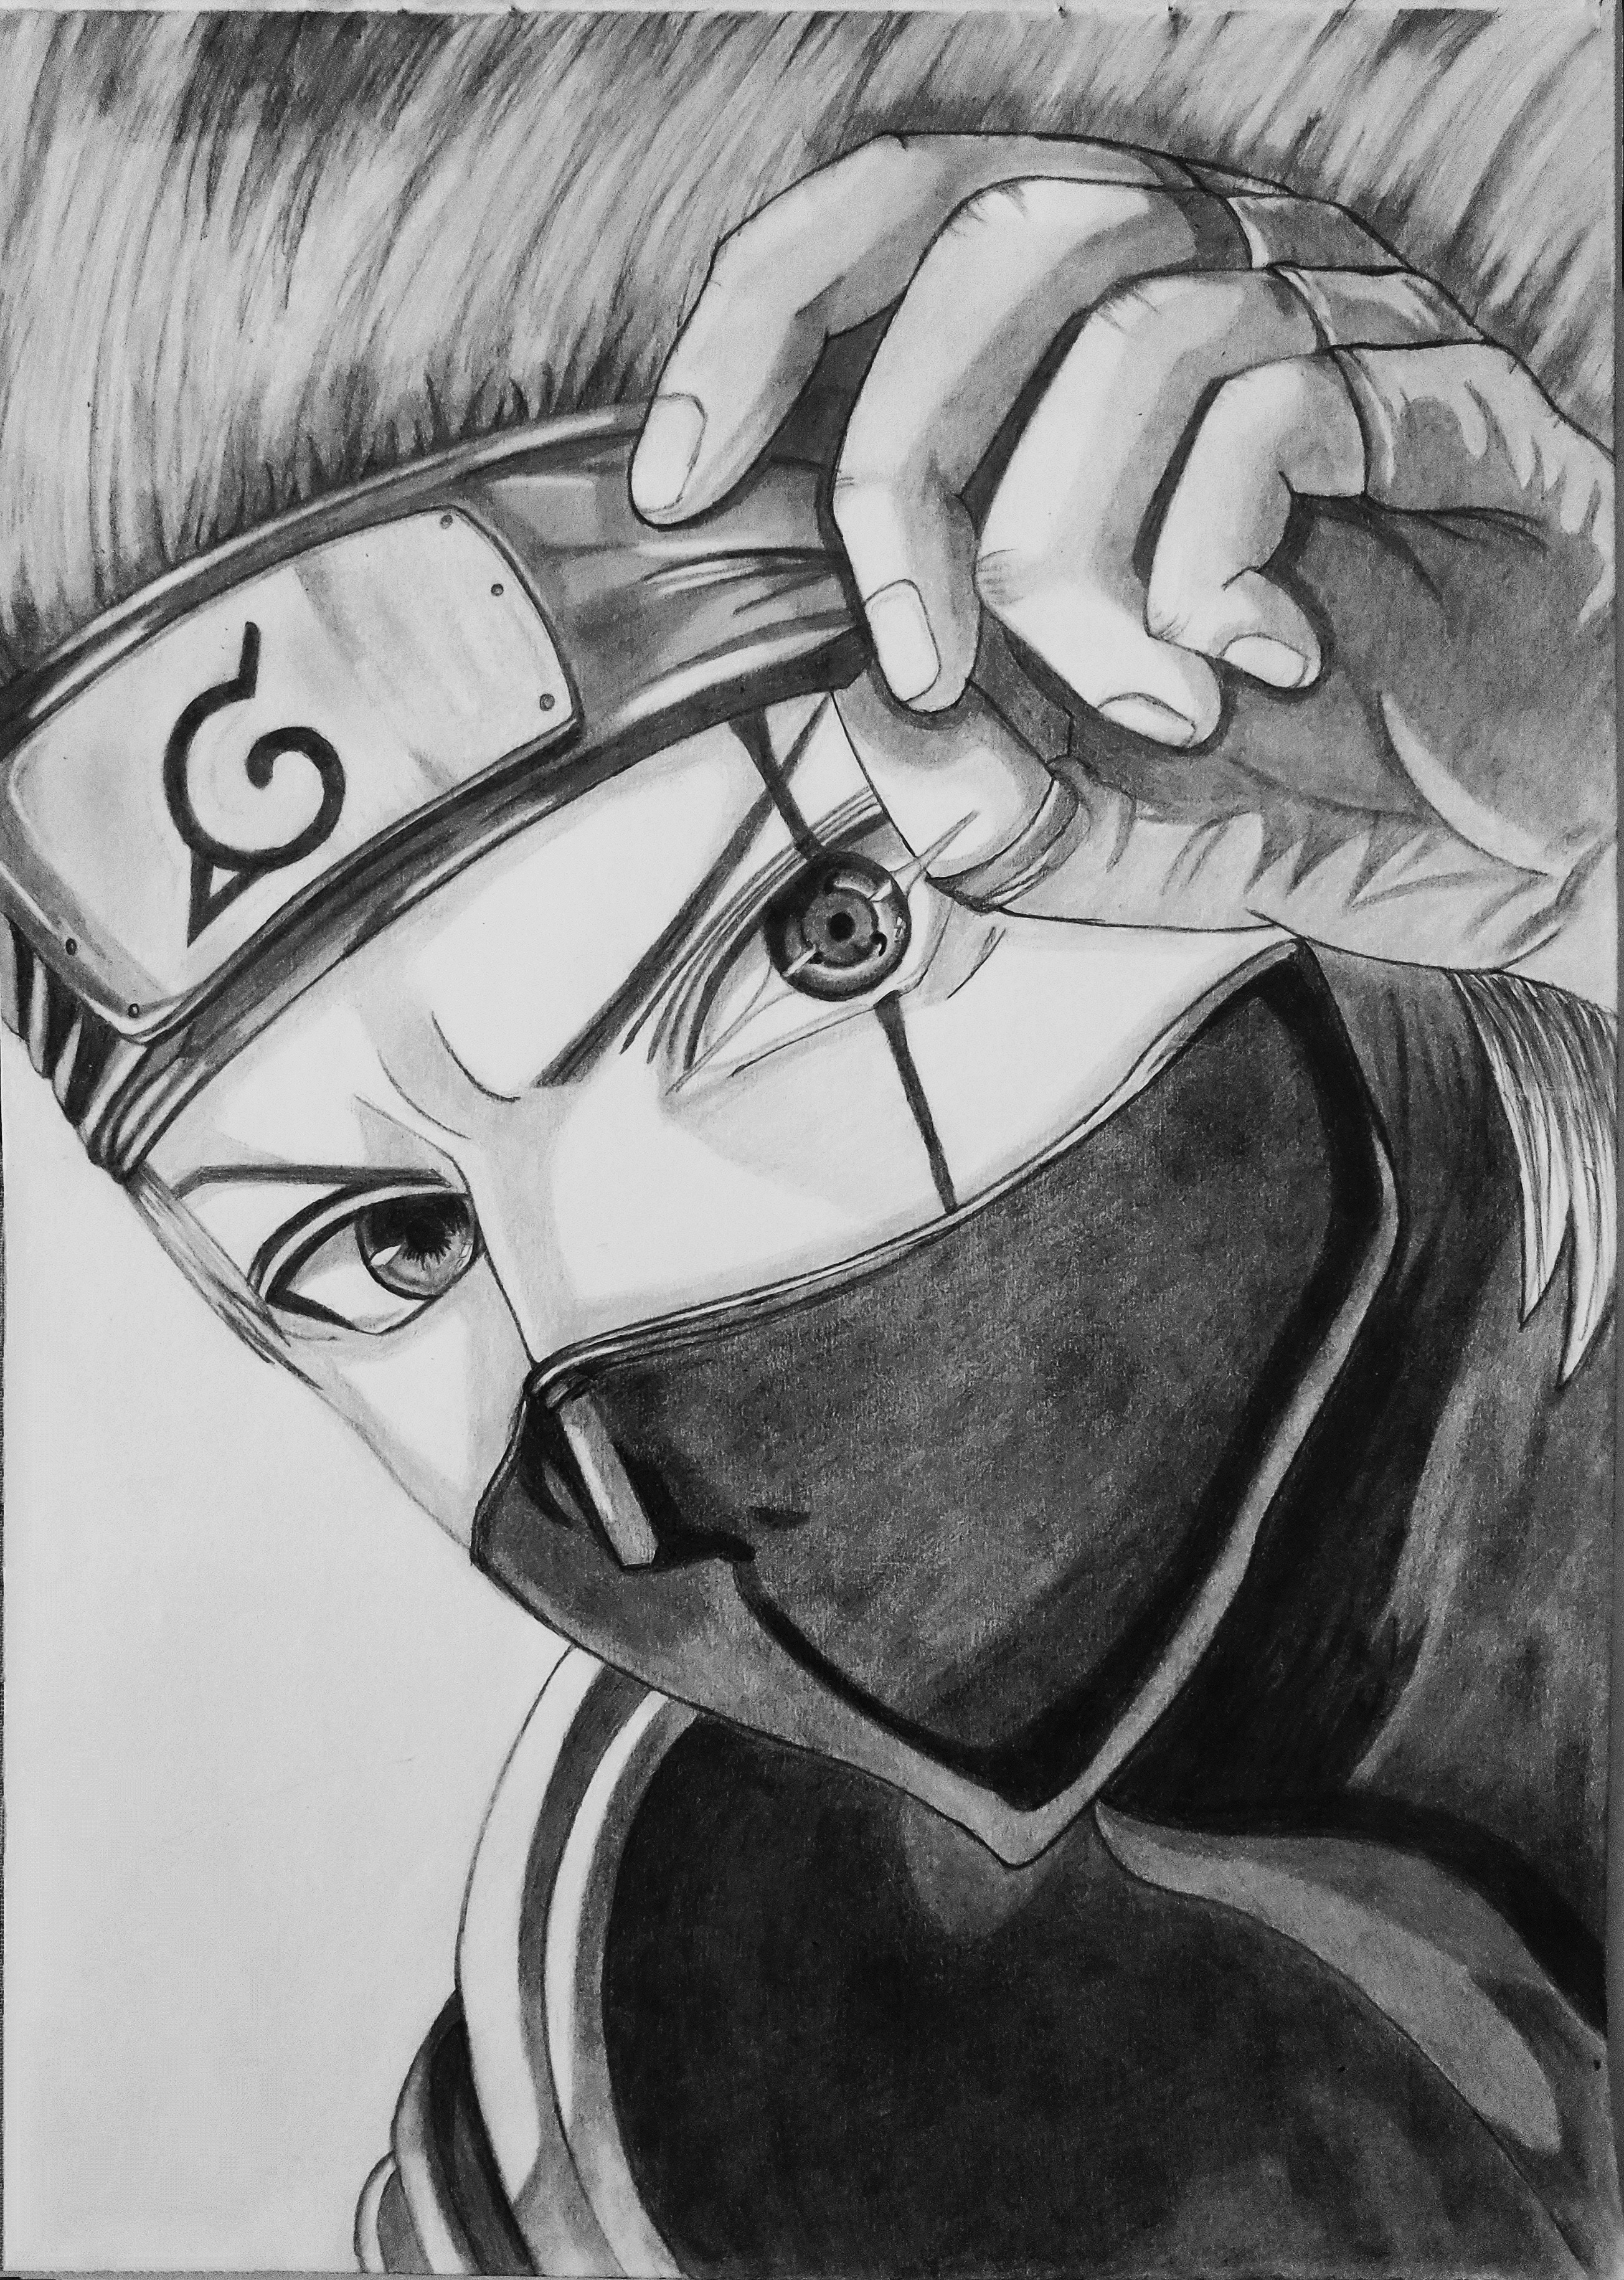 Kakashi Graphite Drawing By Gurpreet Singh  absolutearts.com